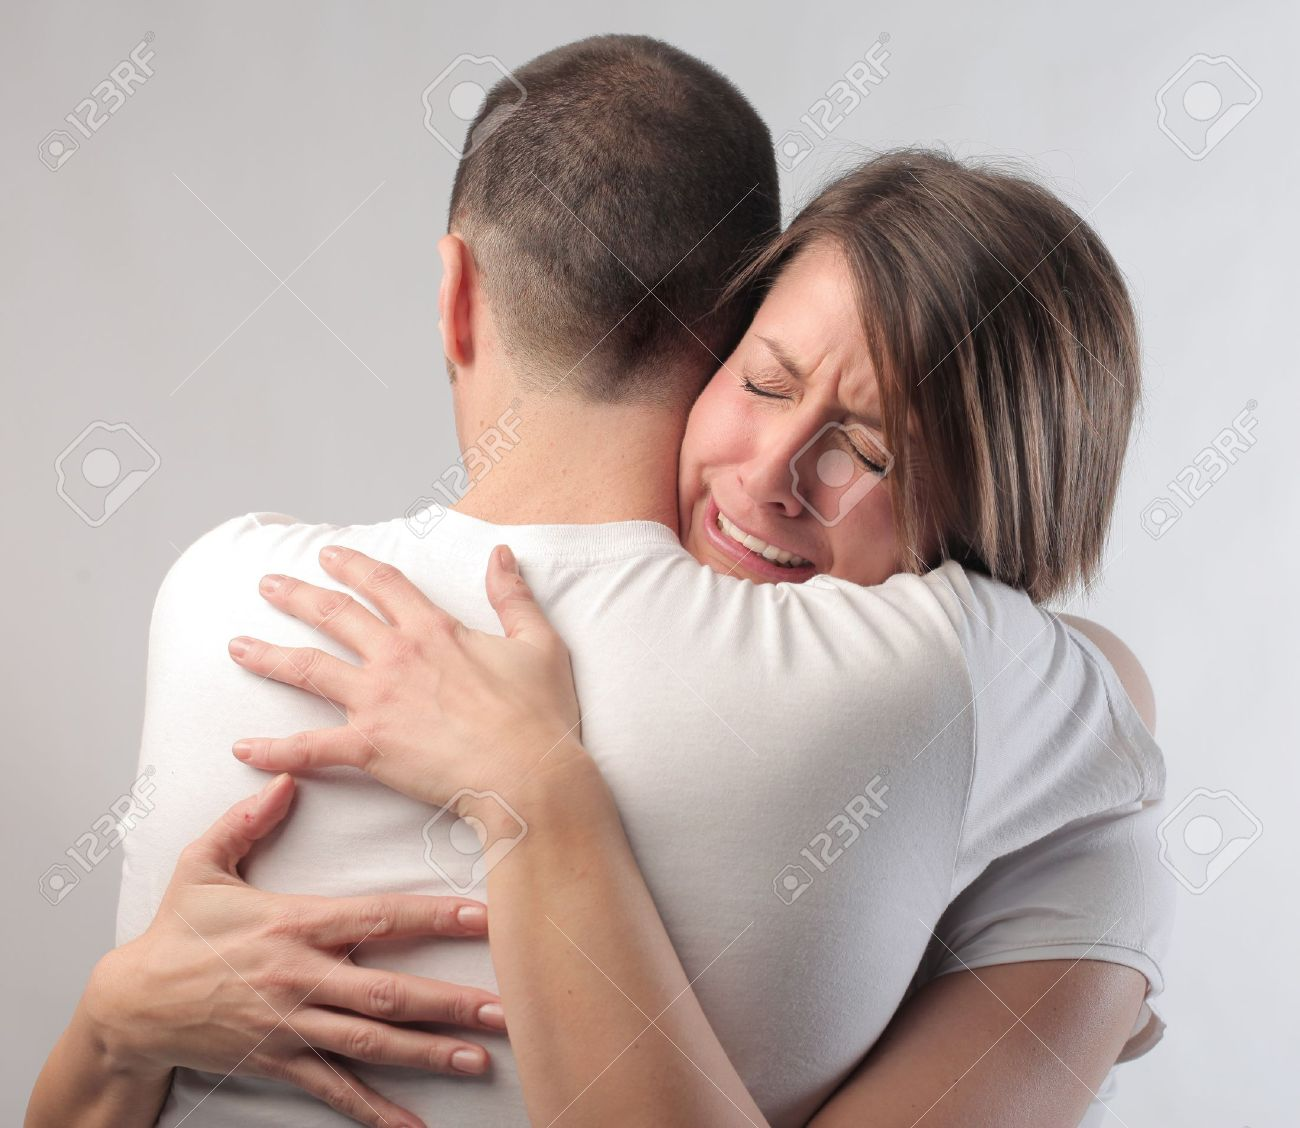 Sad Woman Hugging Her Husband Stock Photo, Picture And Royalty ...